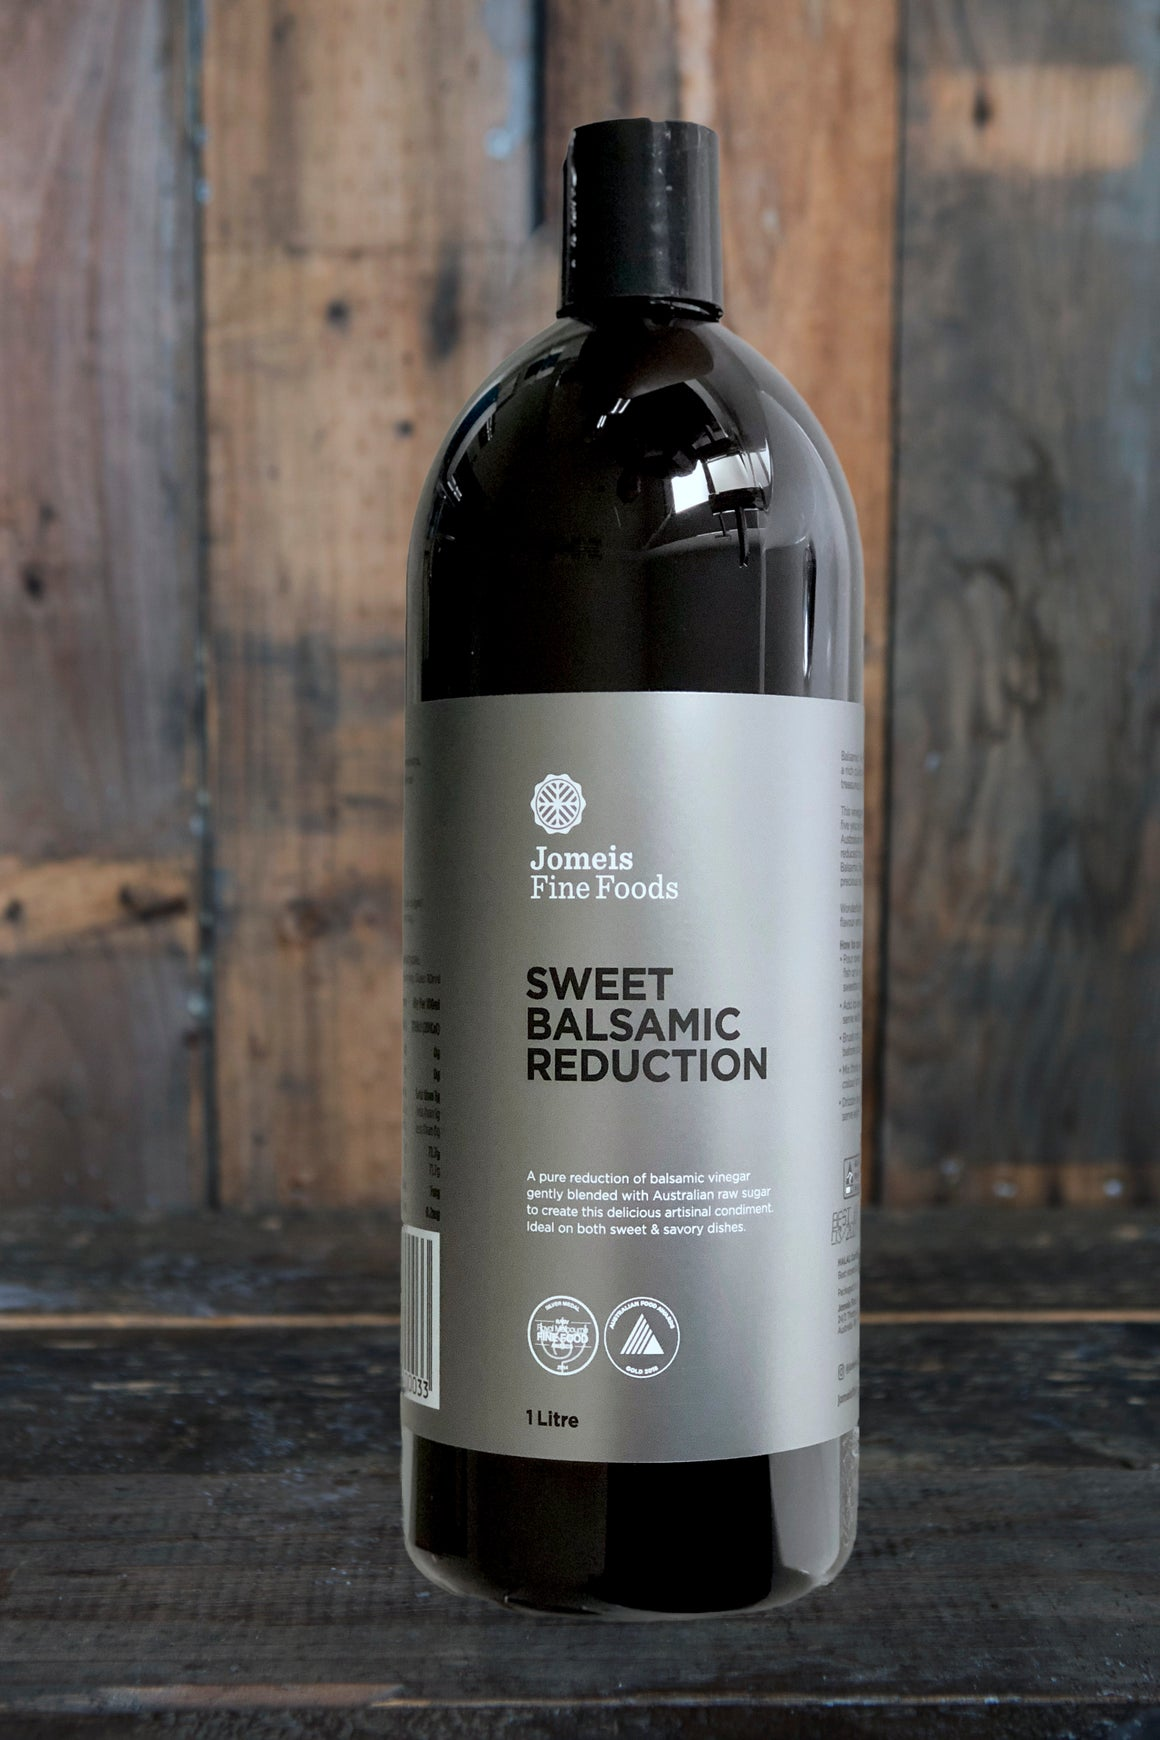 Sweet Balsamic Reduction 1 litre